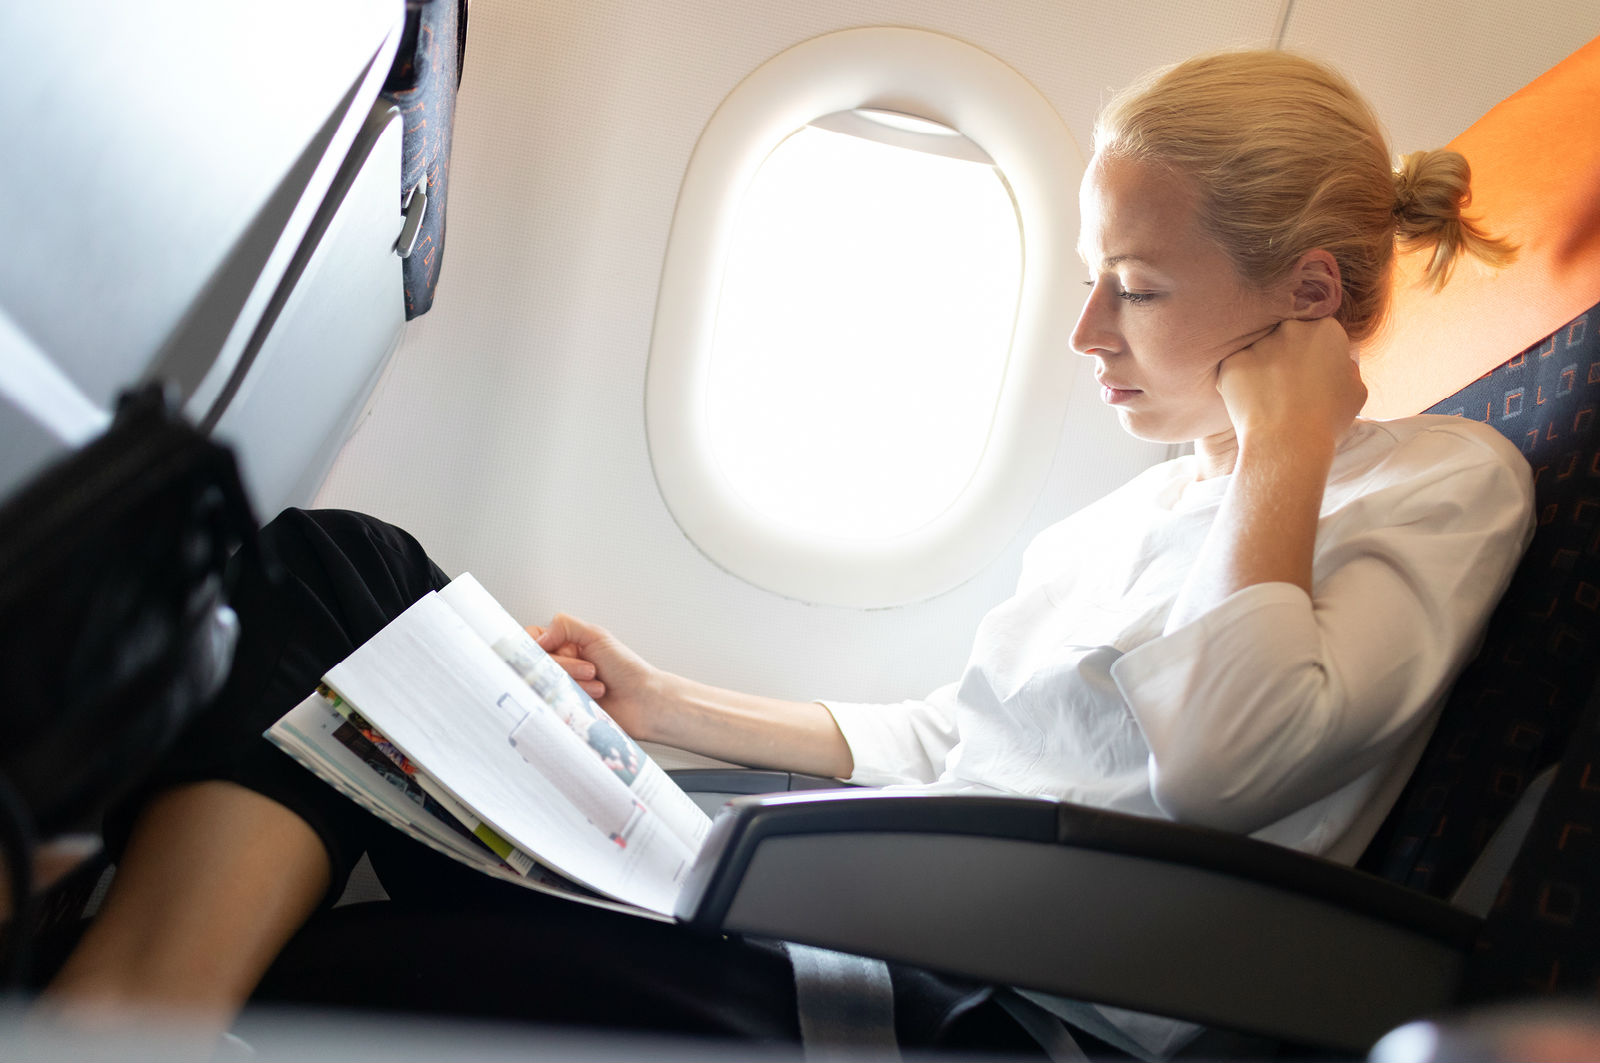 Five Tips to Stay Cool & Comfy On A Long Flight